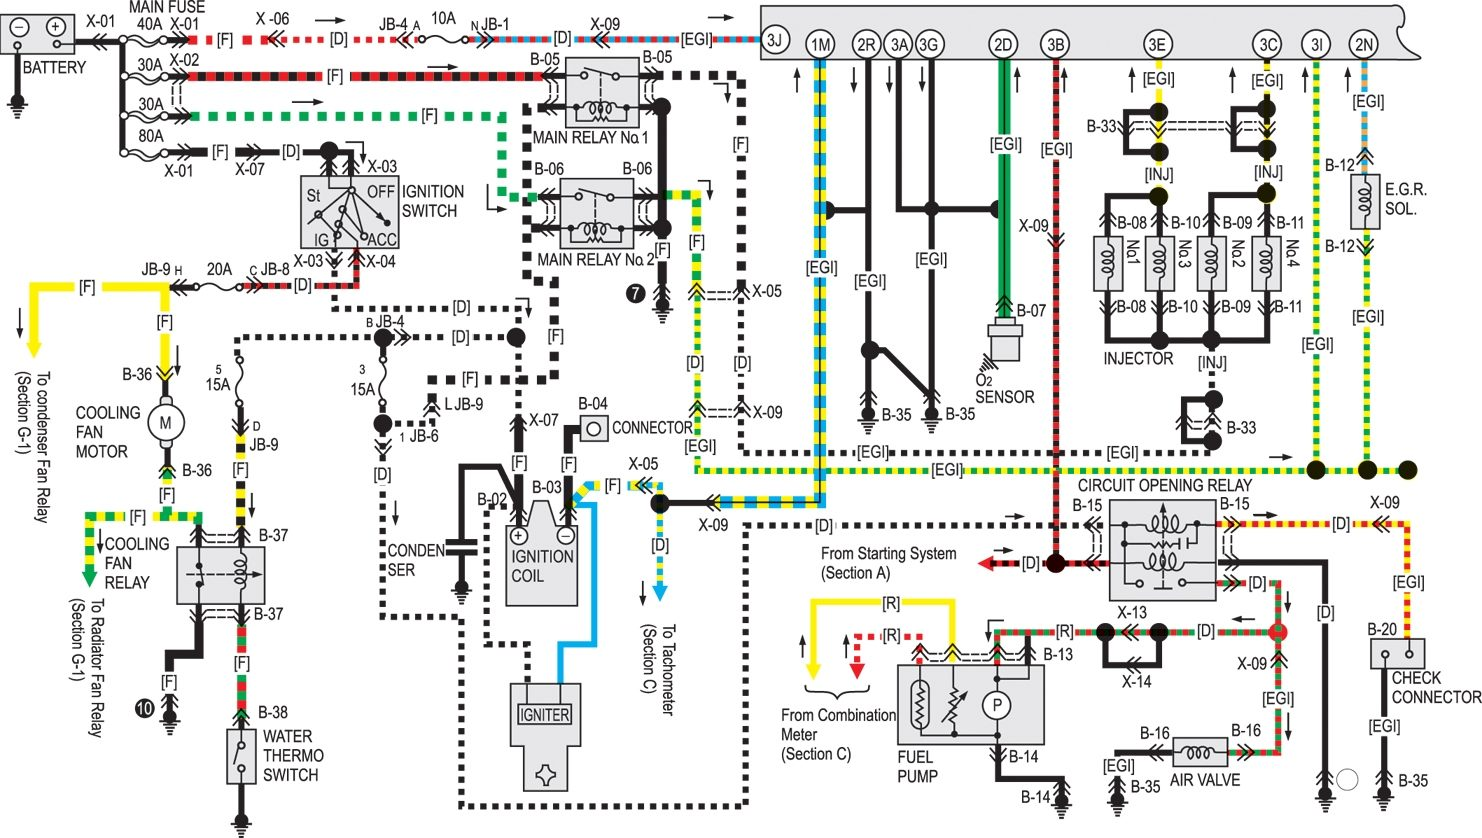 Mazda Car Manuals Wiring Diagrams Pdf Fault Codes 1970 F100 Electric Fan Relay Diagram Download